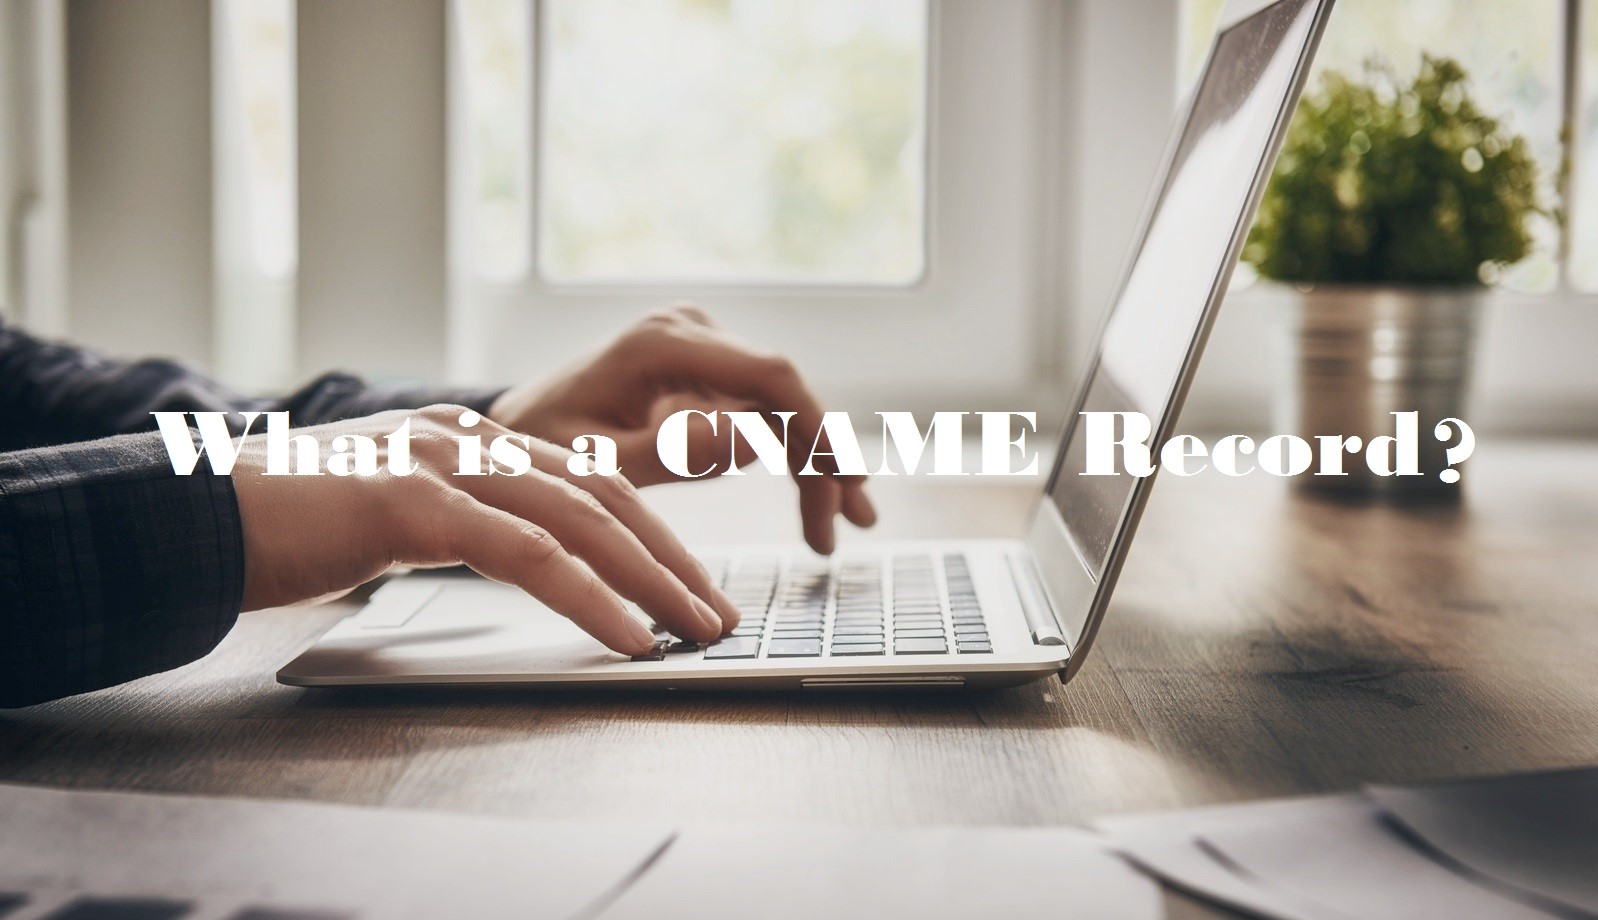 What Is A CNAME Record?